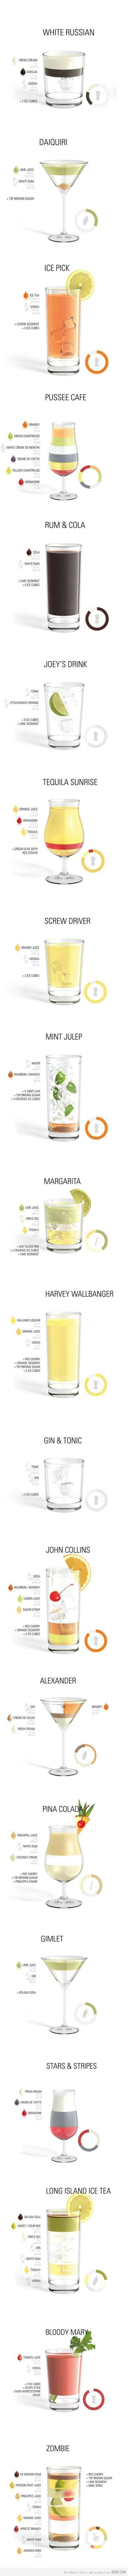 Visual drink mixing